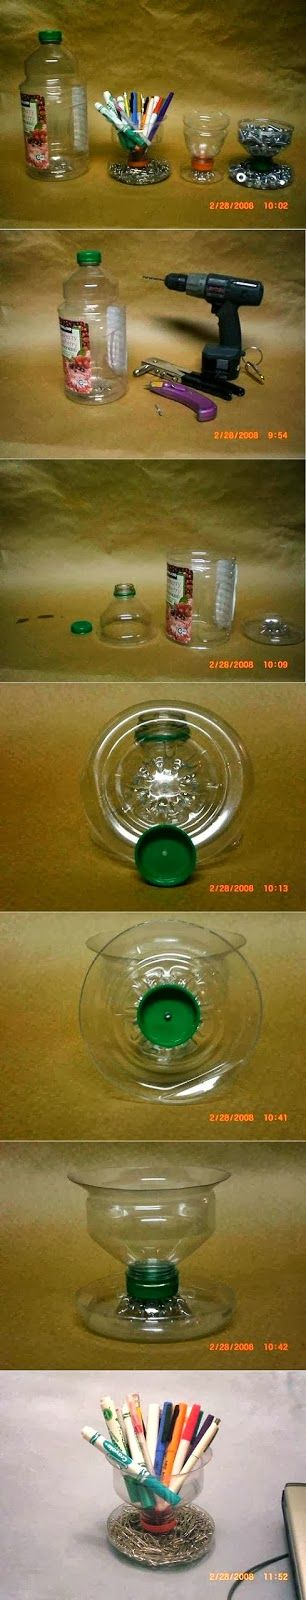 22 best images about recycling plastic bottle crafts on for Plastic bottle storage